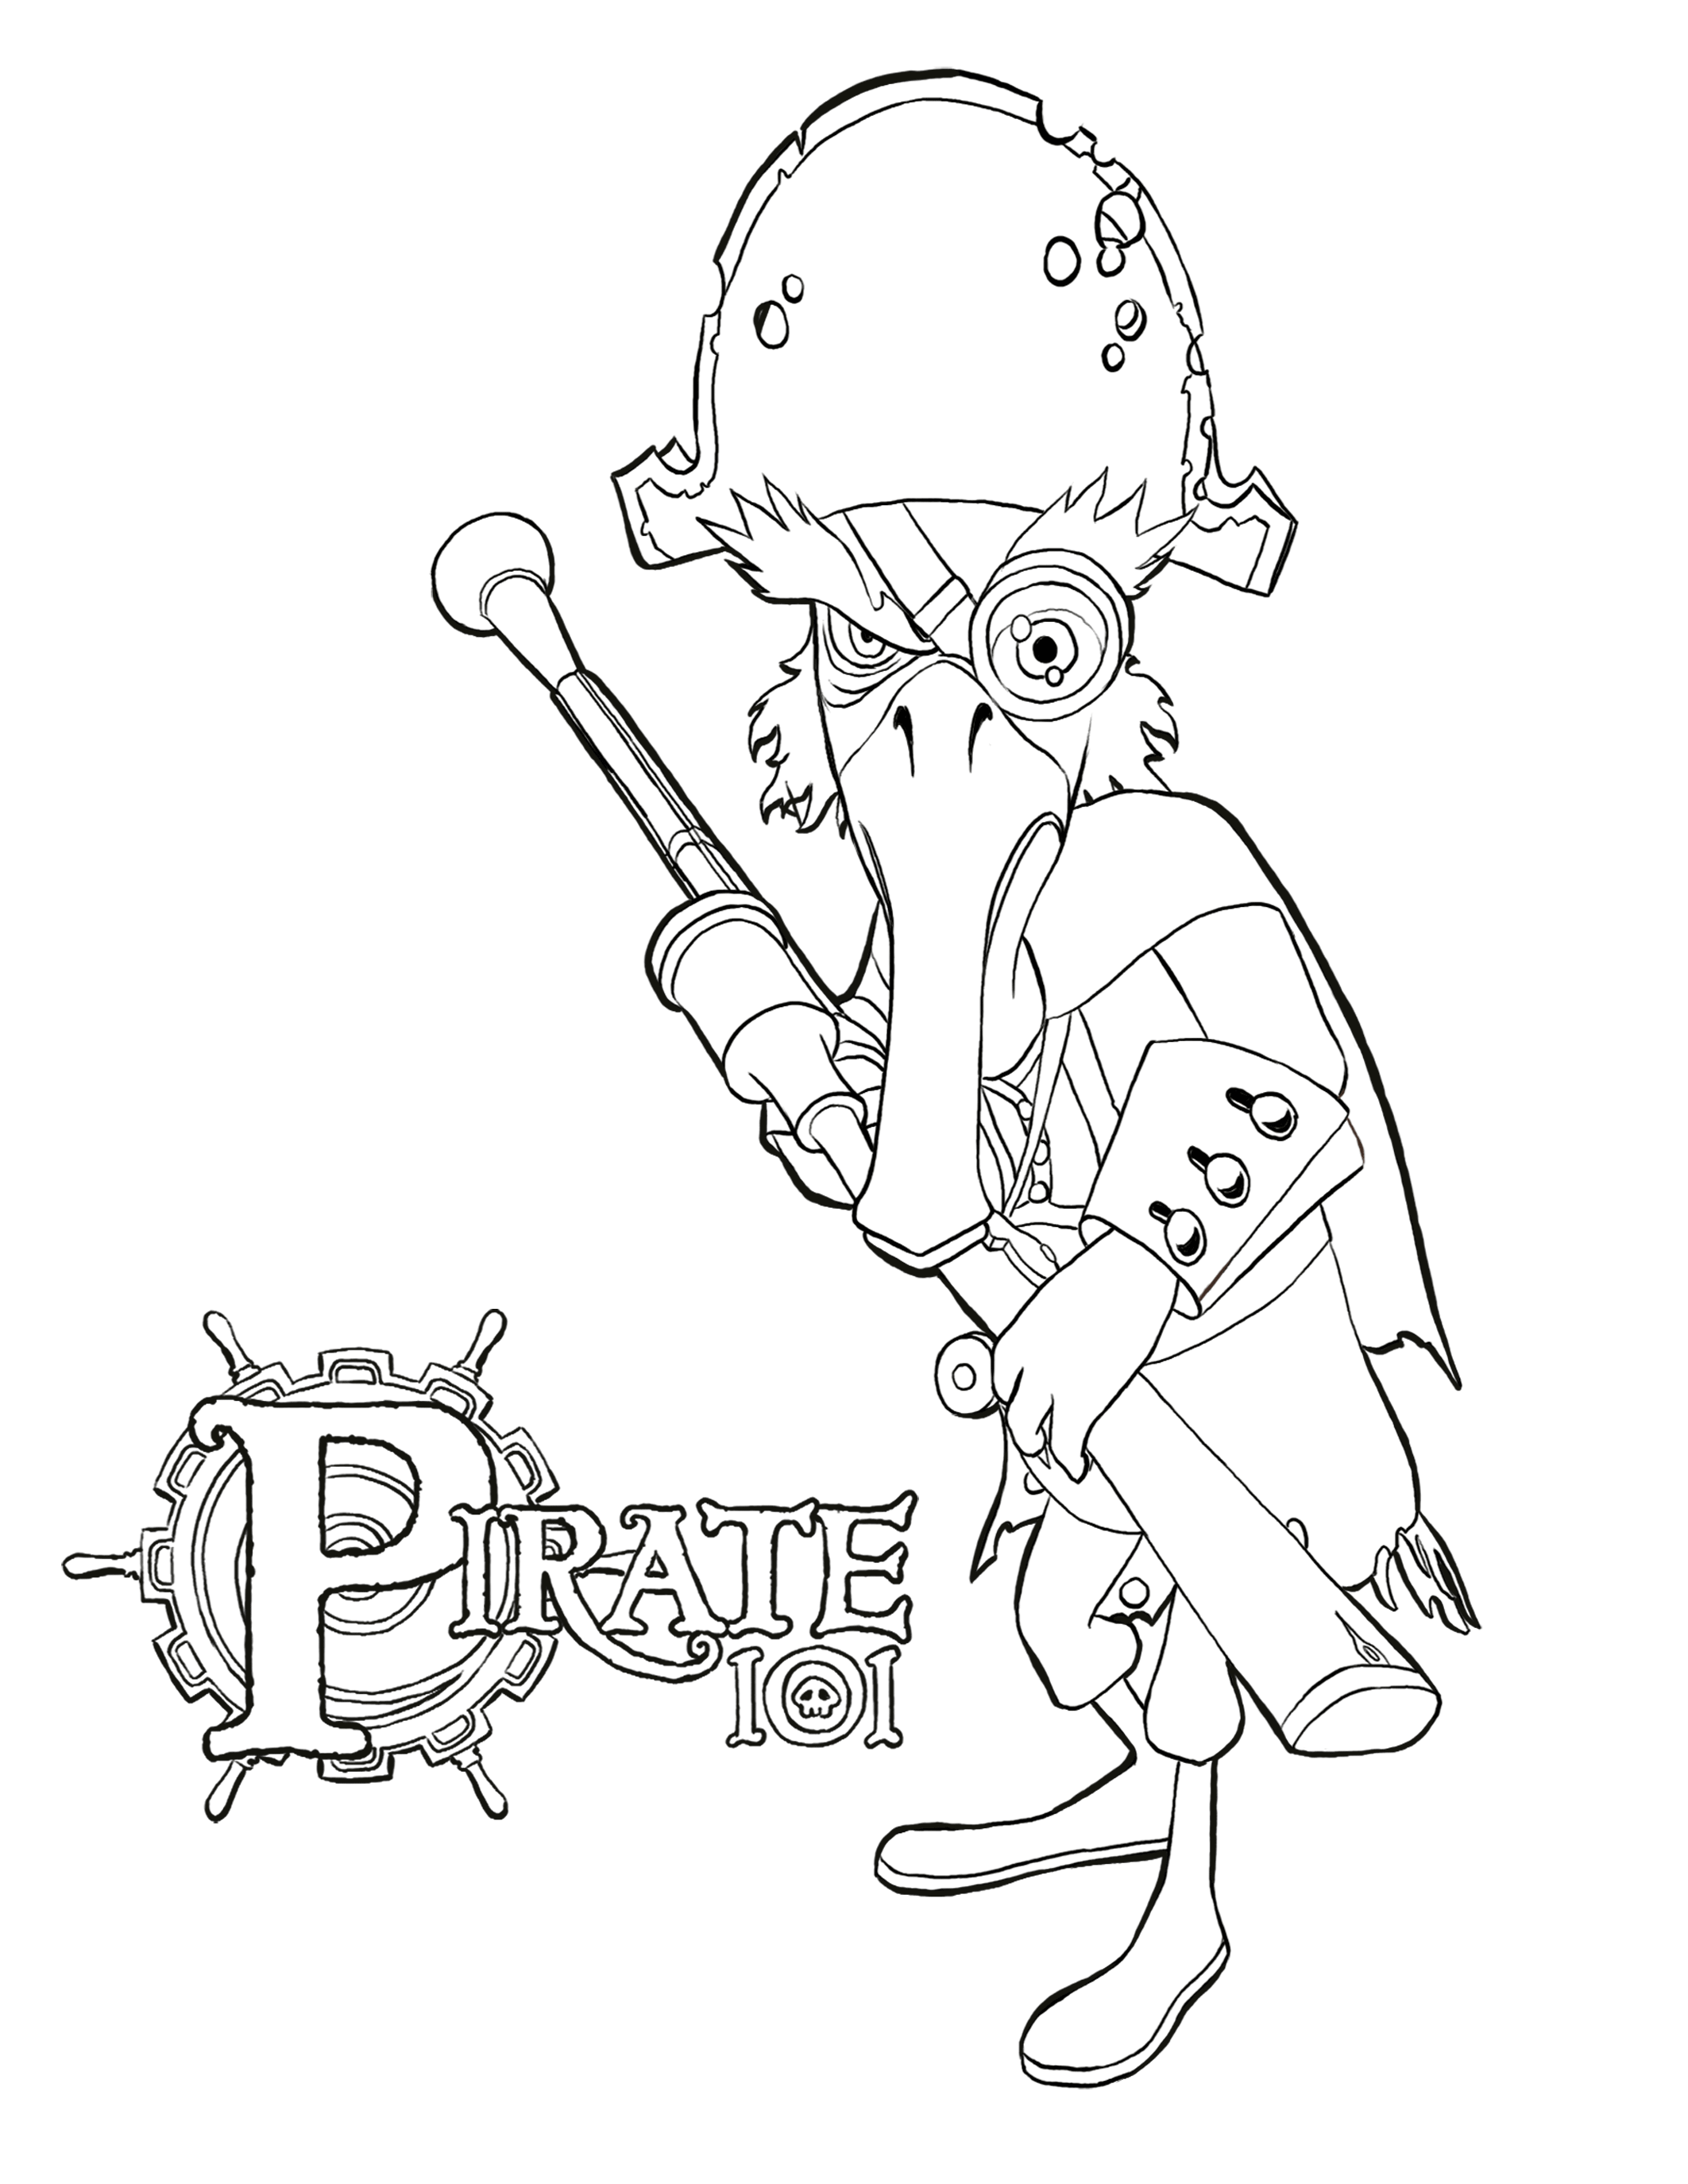 Coloring Pages Eyeball Coloring Pages pirate coloring pages pirate101 free online game download ol fish eye page